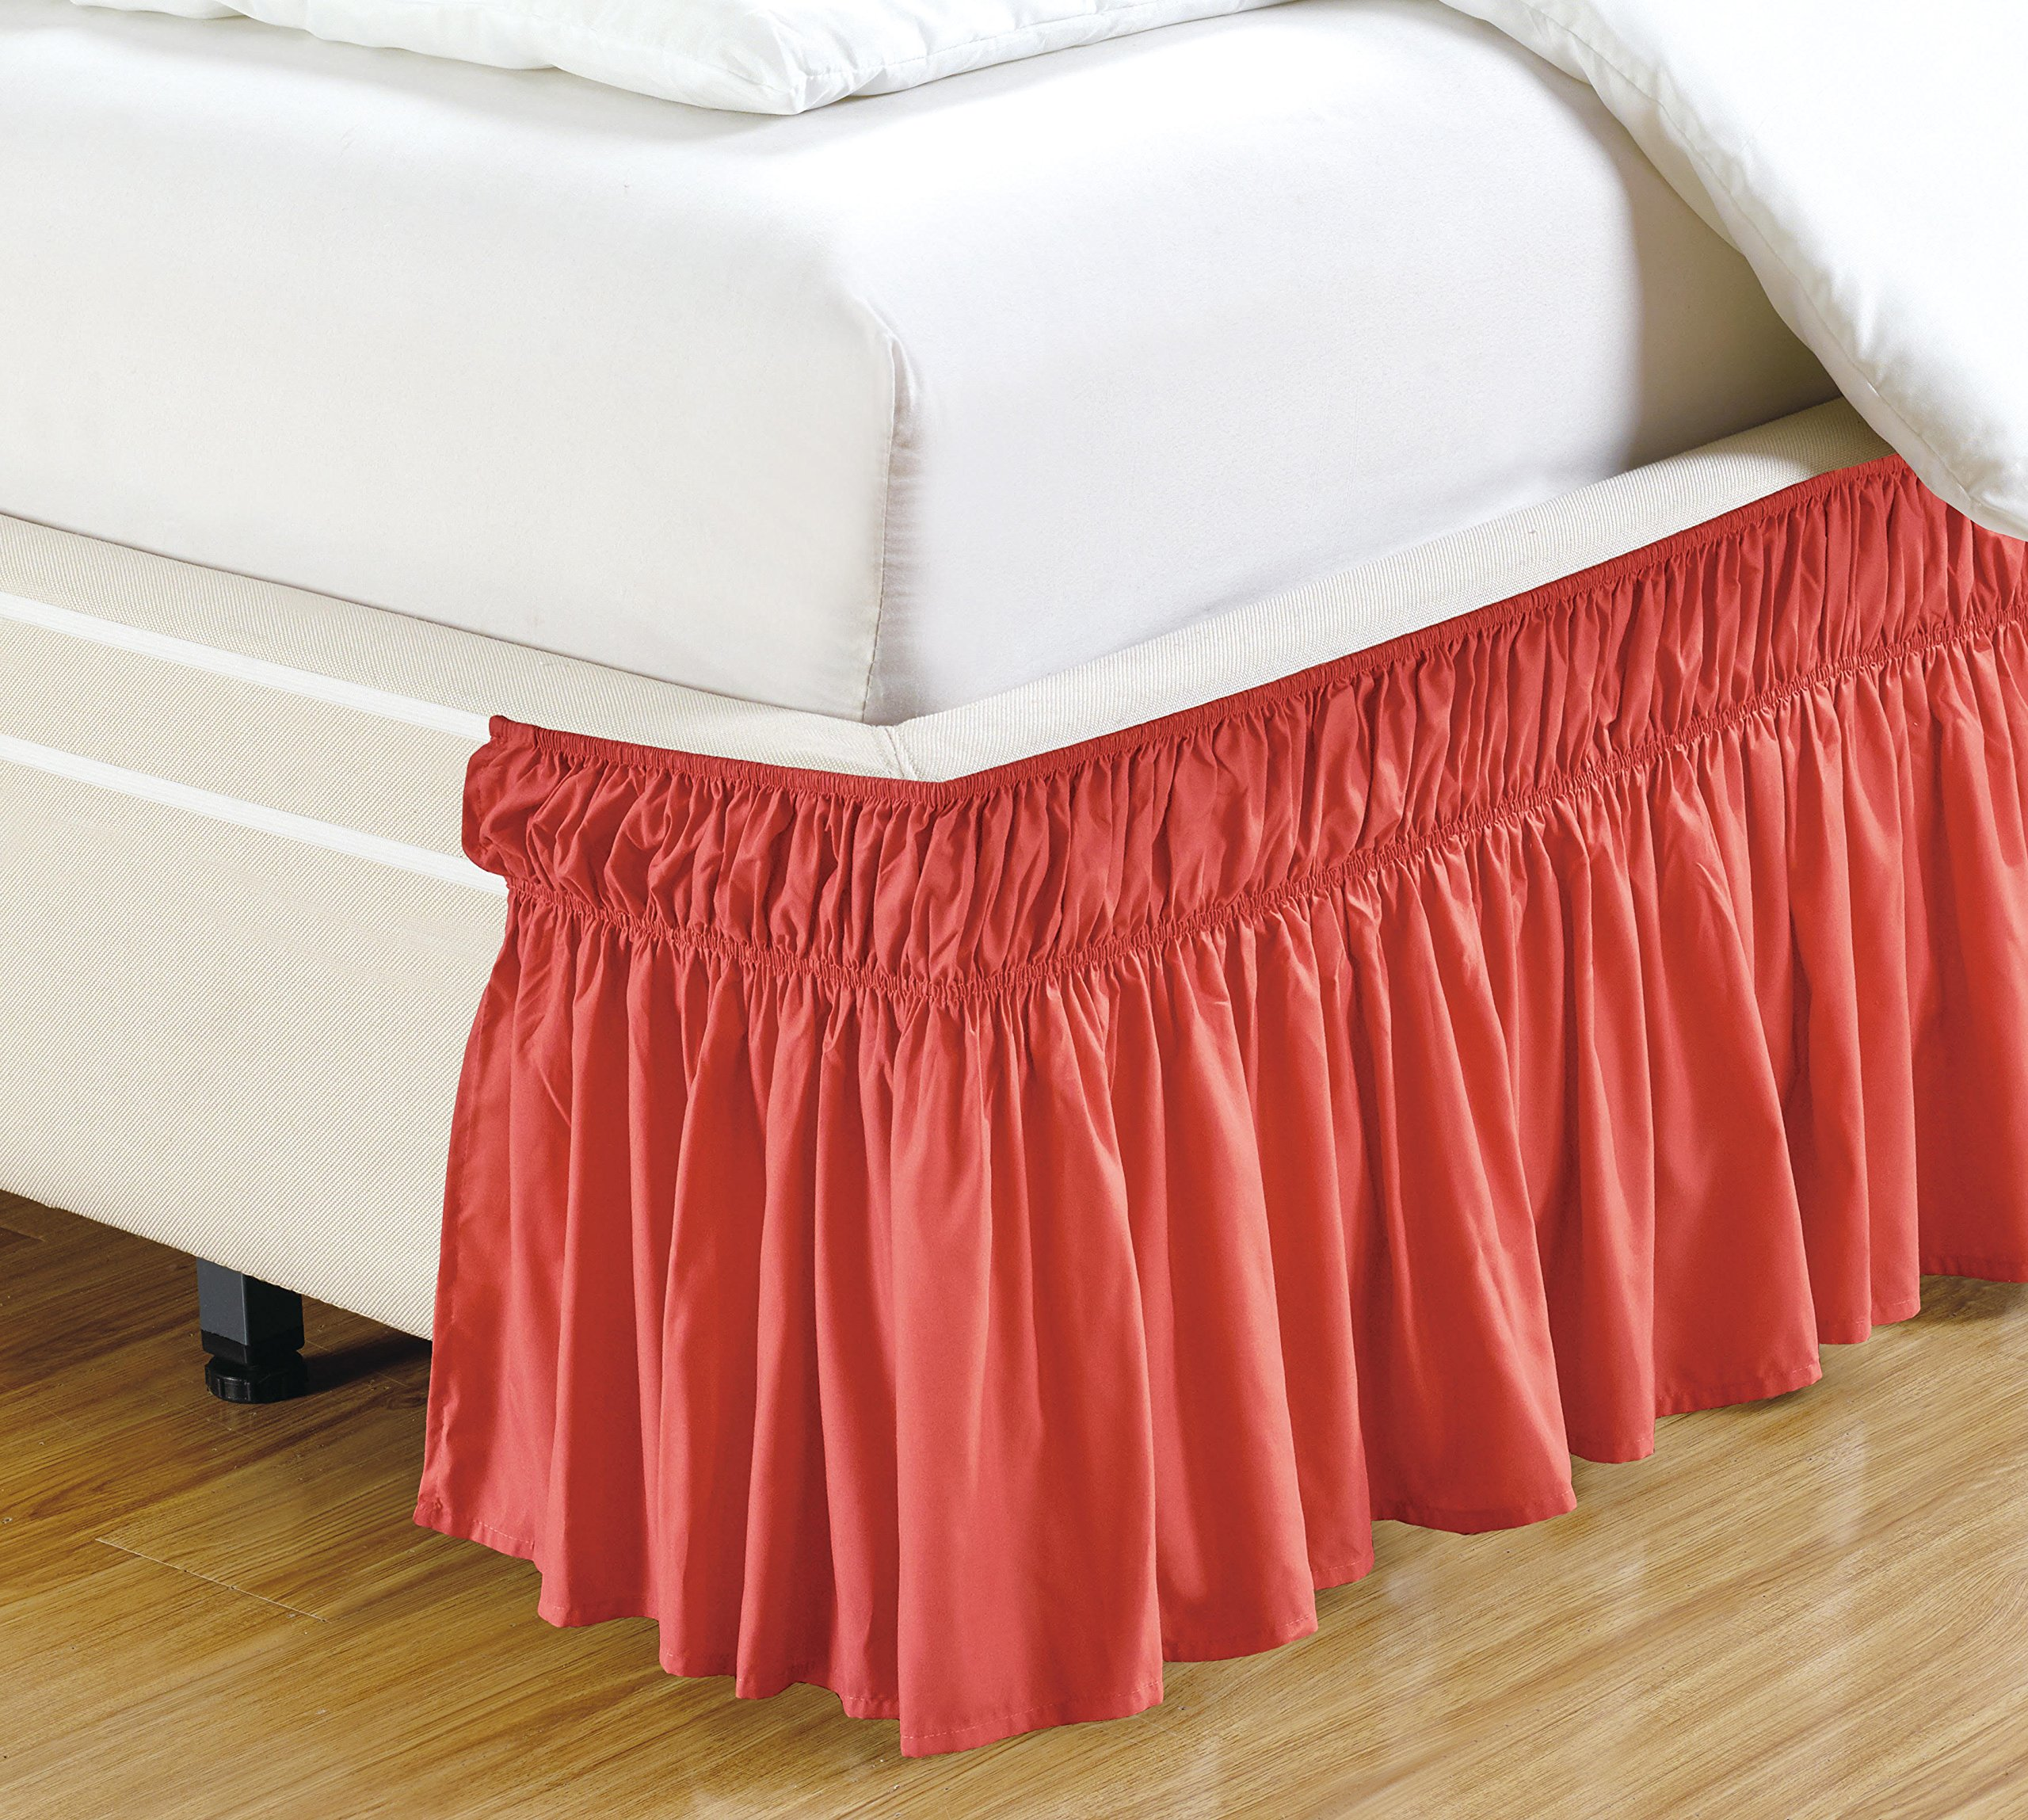 Fancy Collection Easy Fit Bed Ruffle wrap Around Elastic Bed Skirt With 17'' Drop New Easy Install Solid Color New (queen/king, Coral)